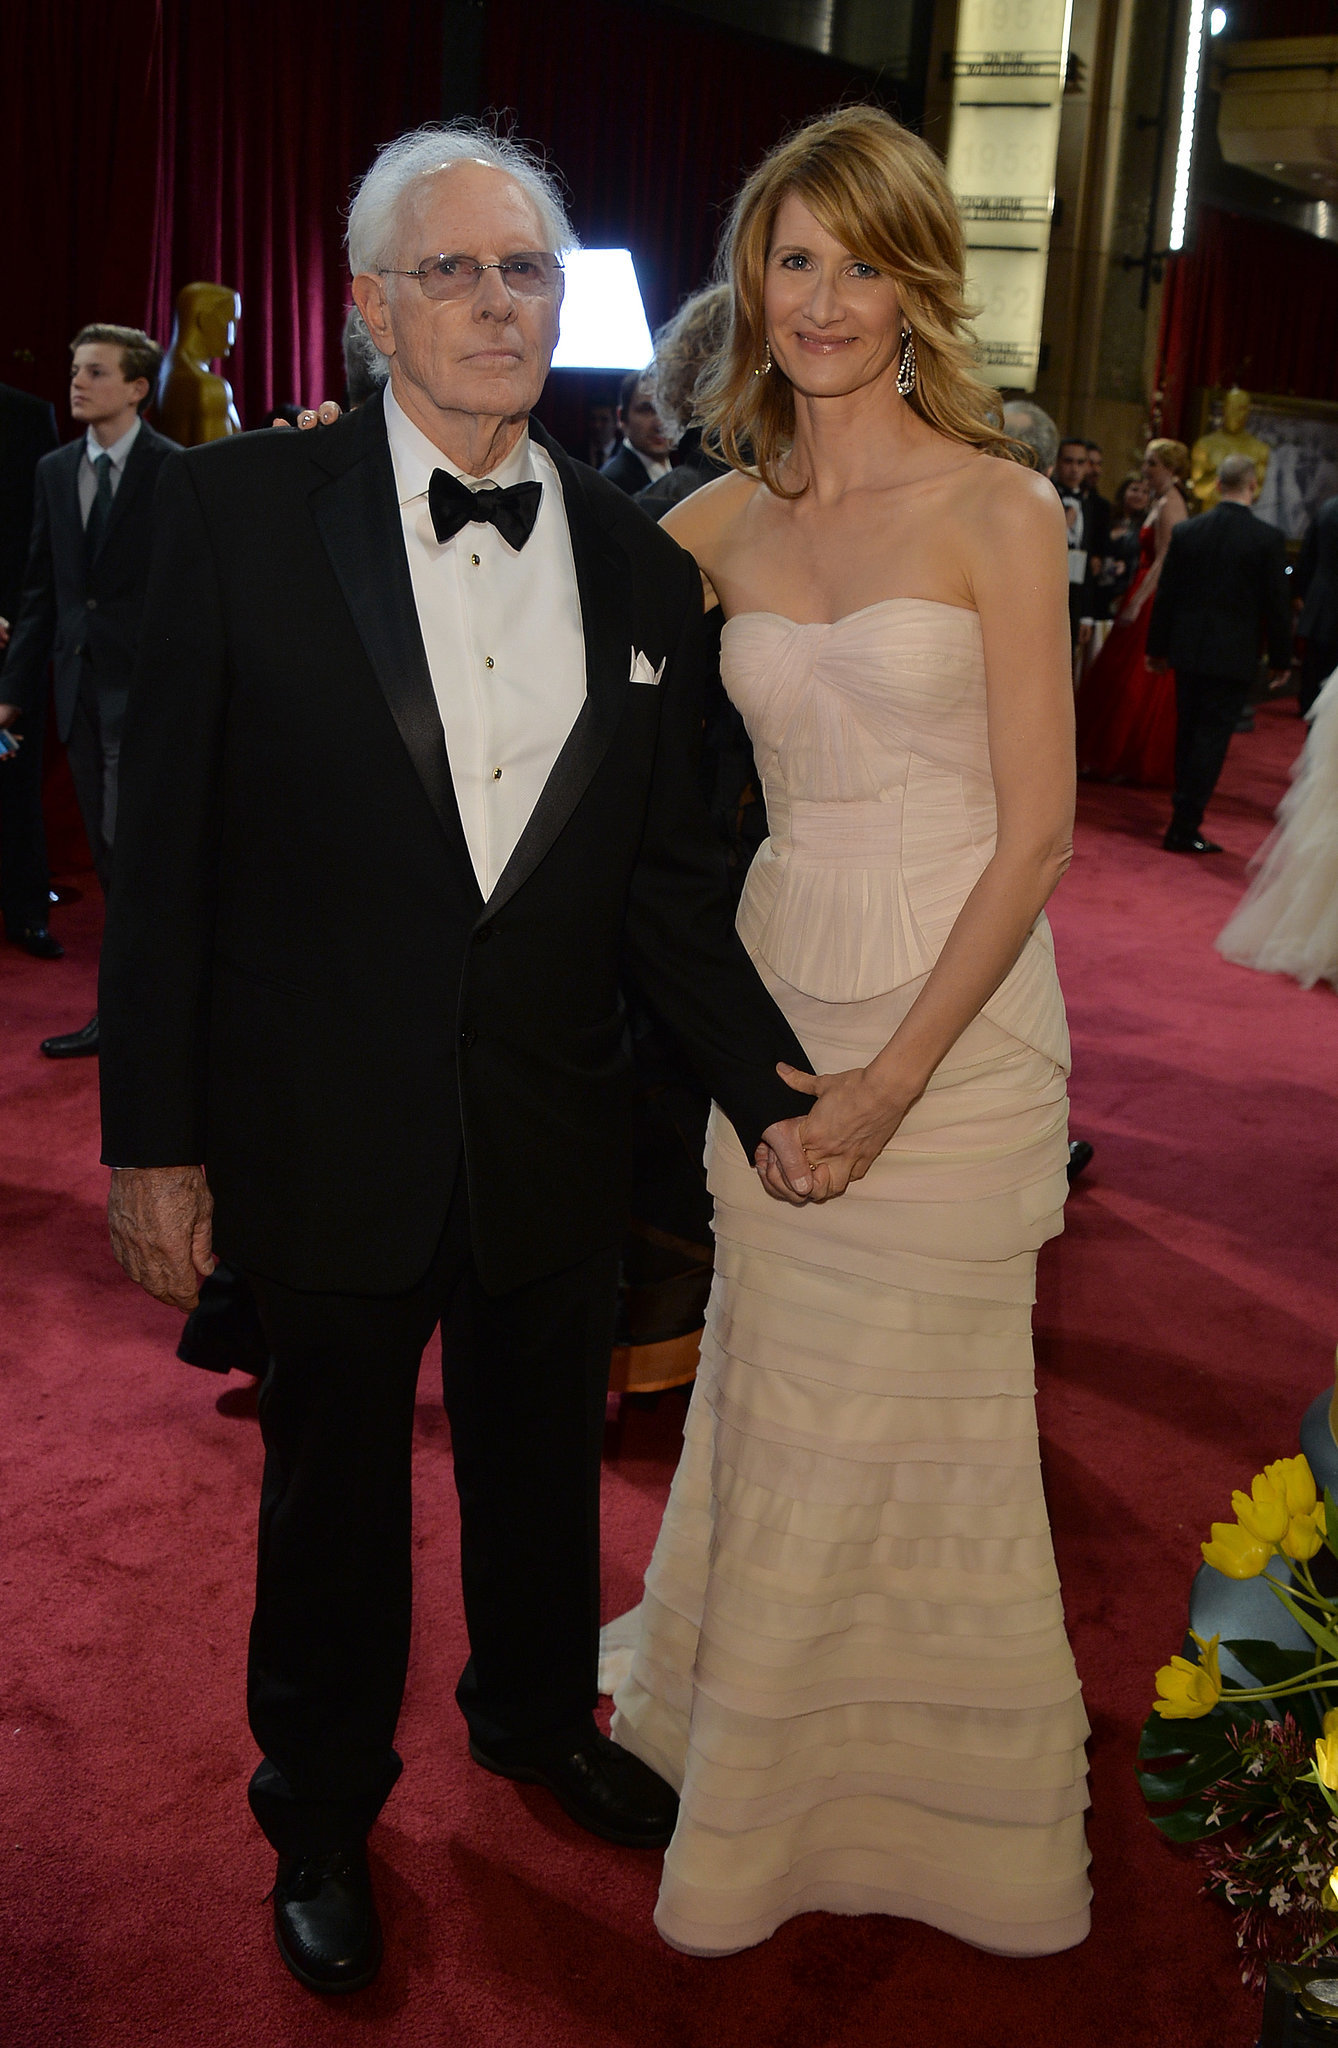 It's Bruce Dern, Nebraska star and one of this year's Oscar nominees.